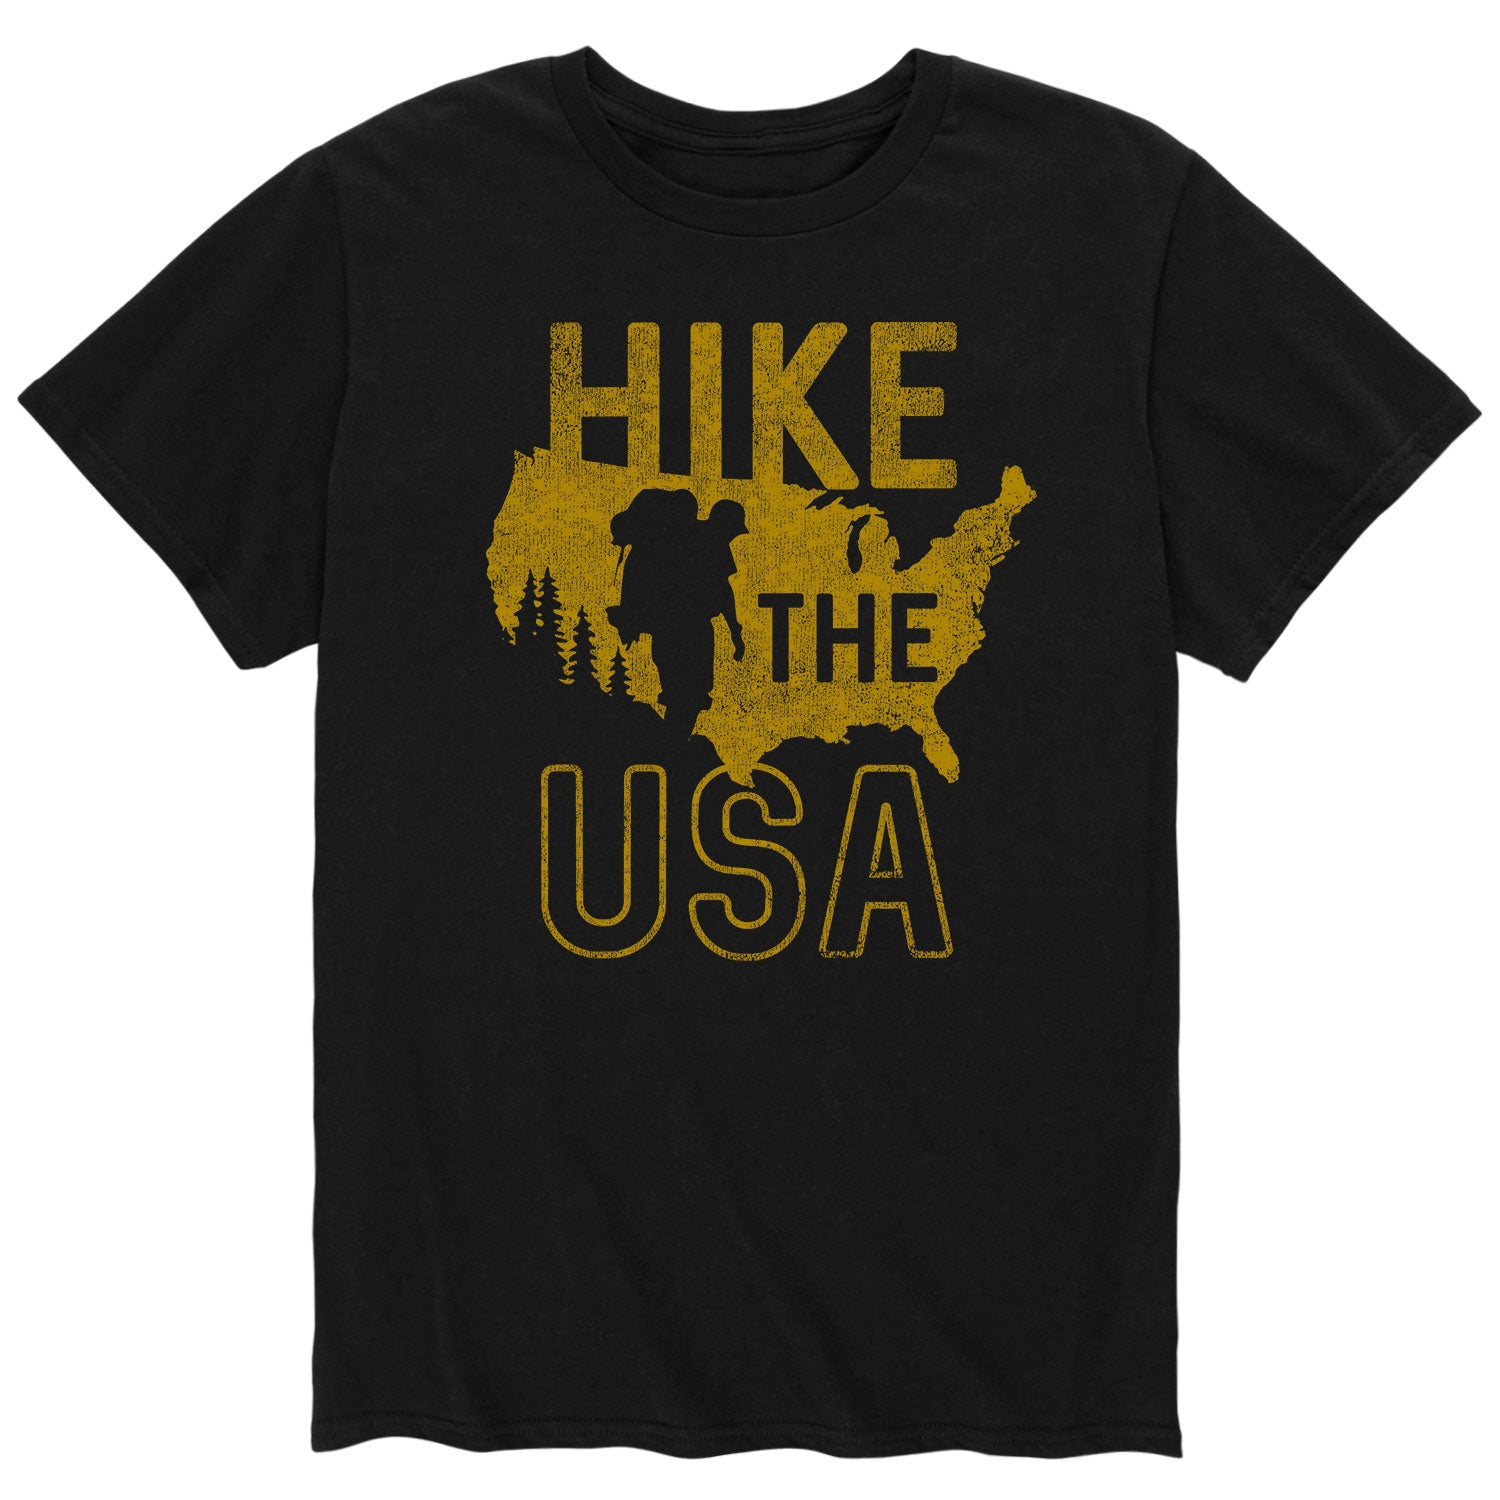 Hike the USA - Men's Short Sleeve T-Shirt